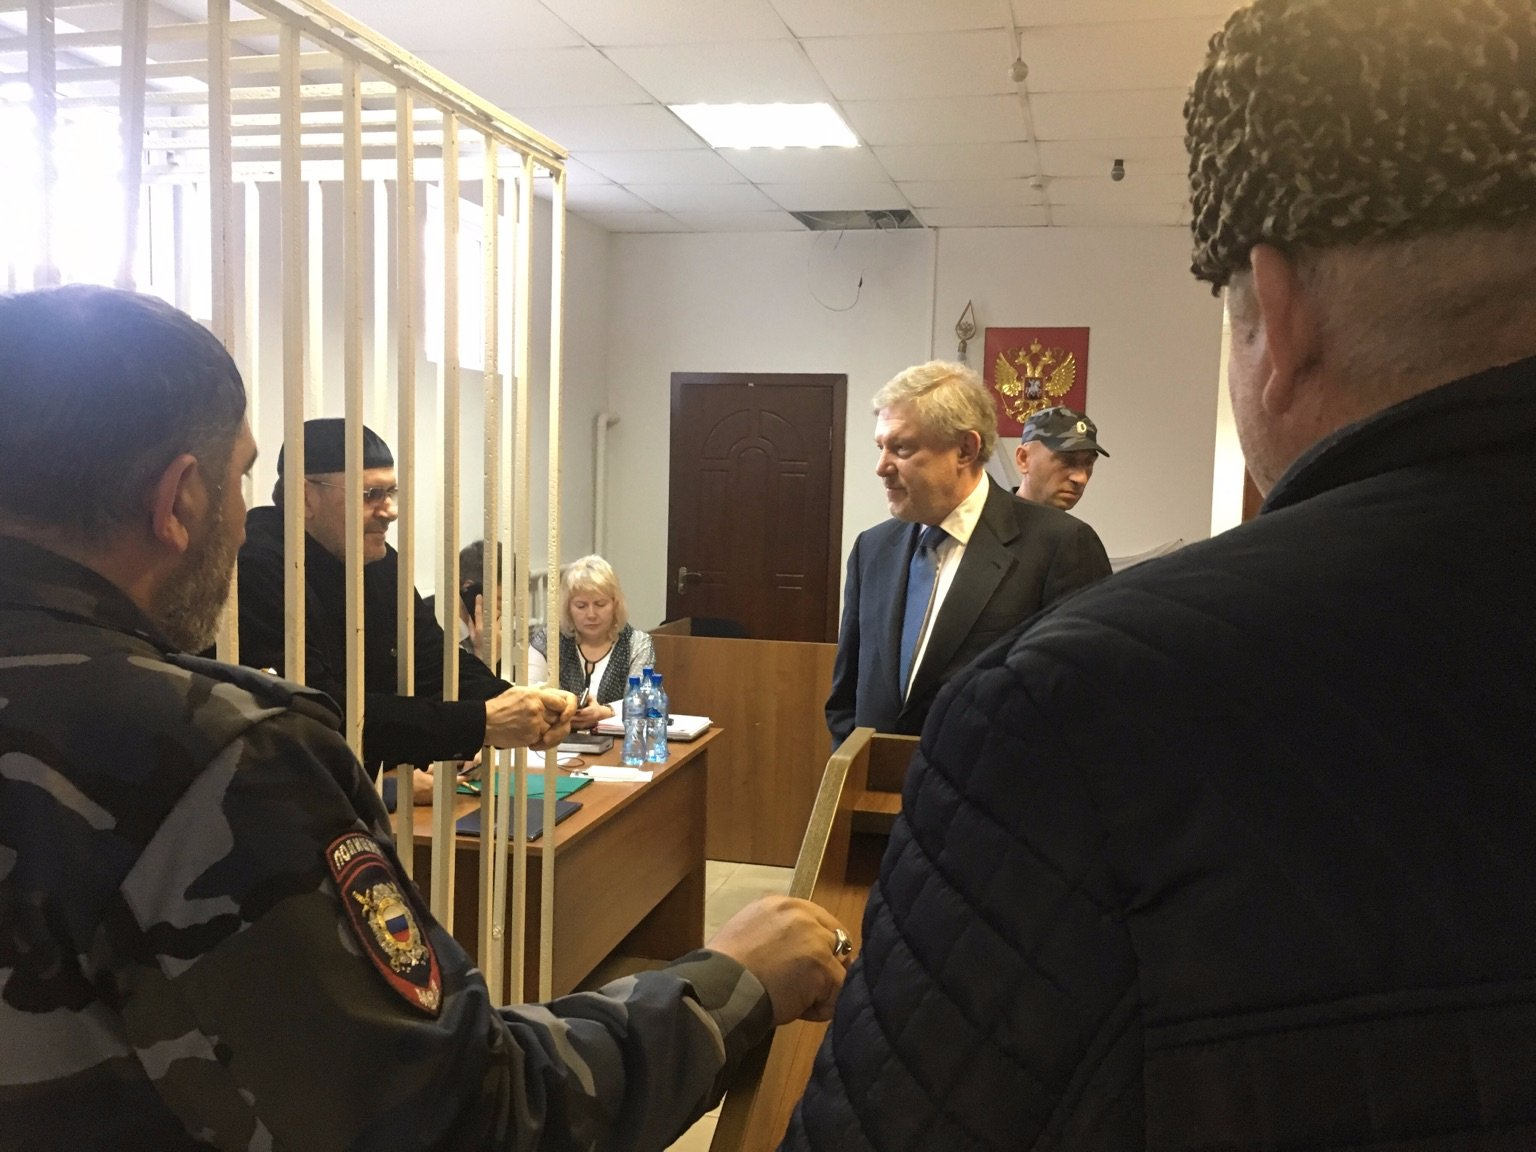 Oyub Titiev in court 2